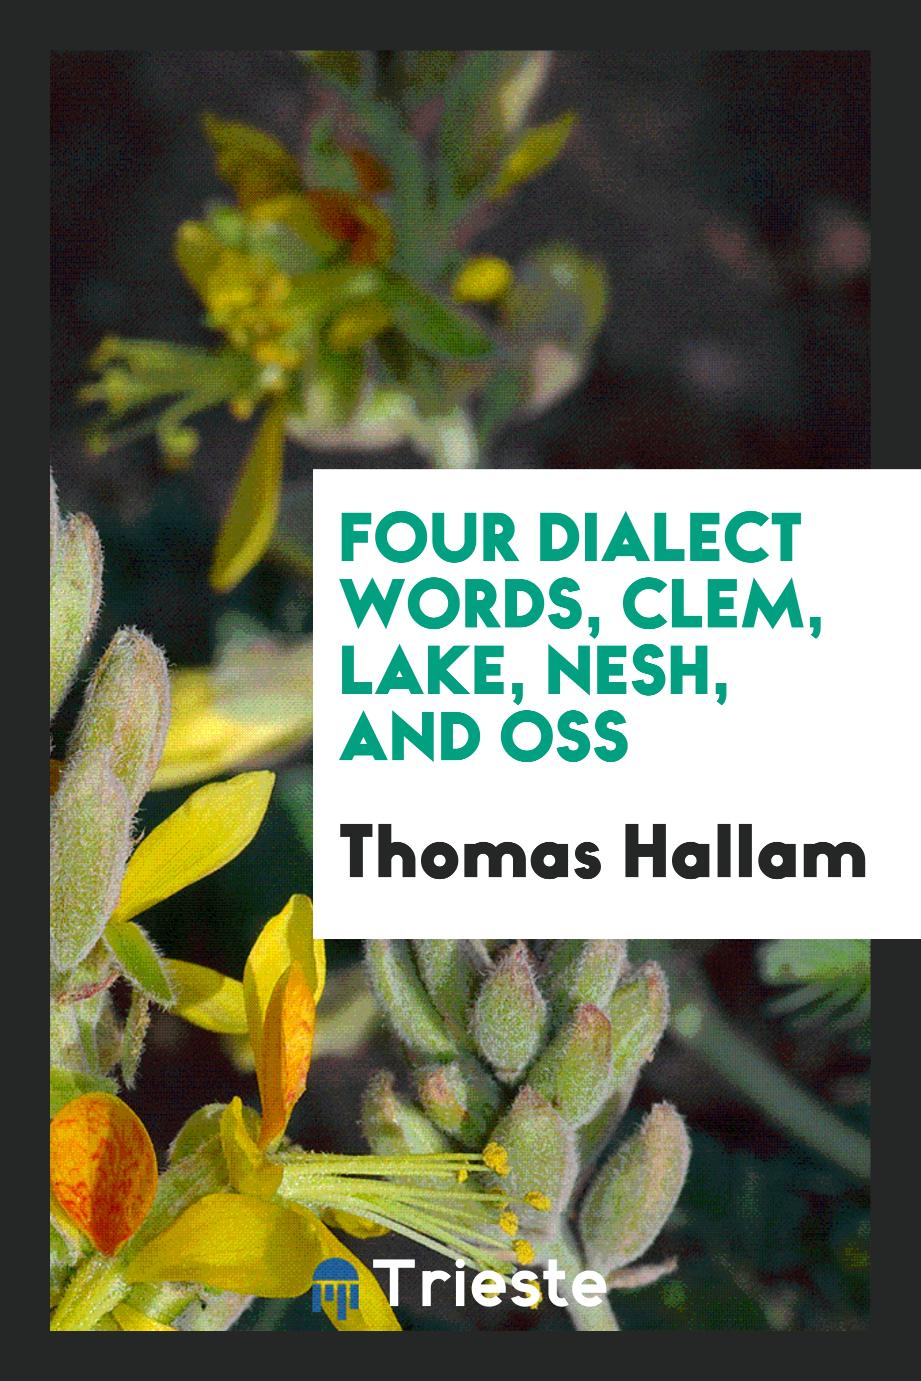 Four dialect words, clem, lake, nesh, and oss